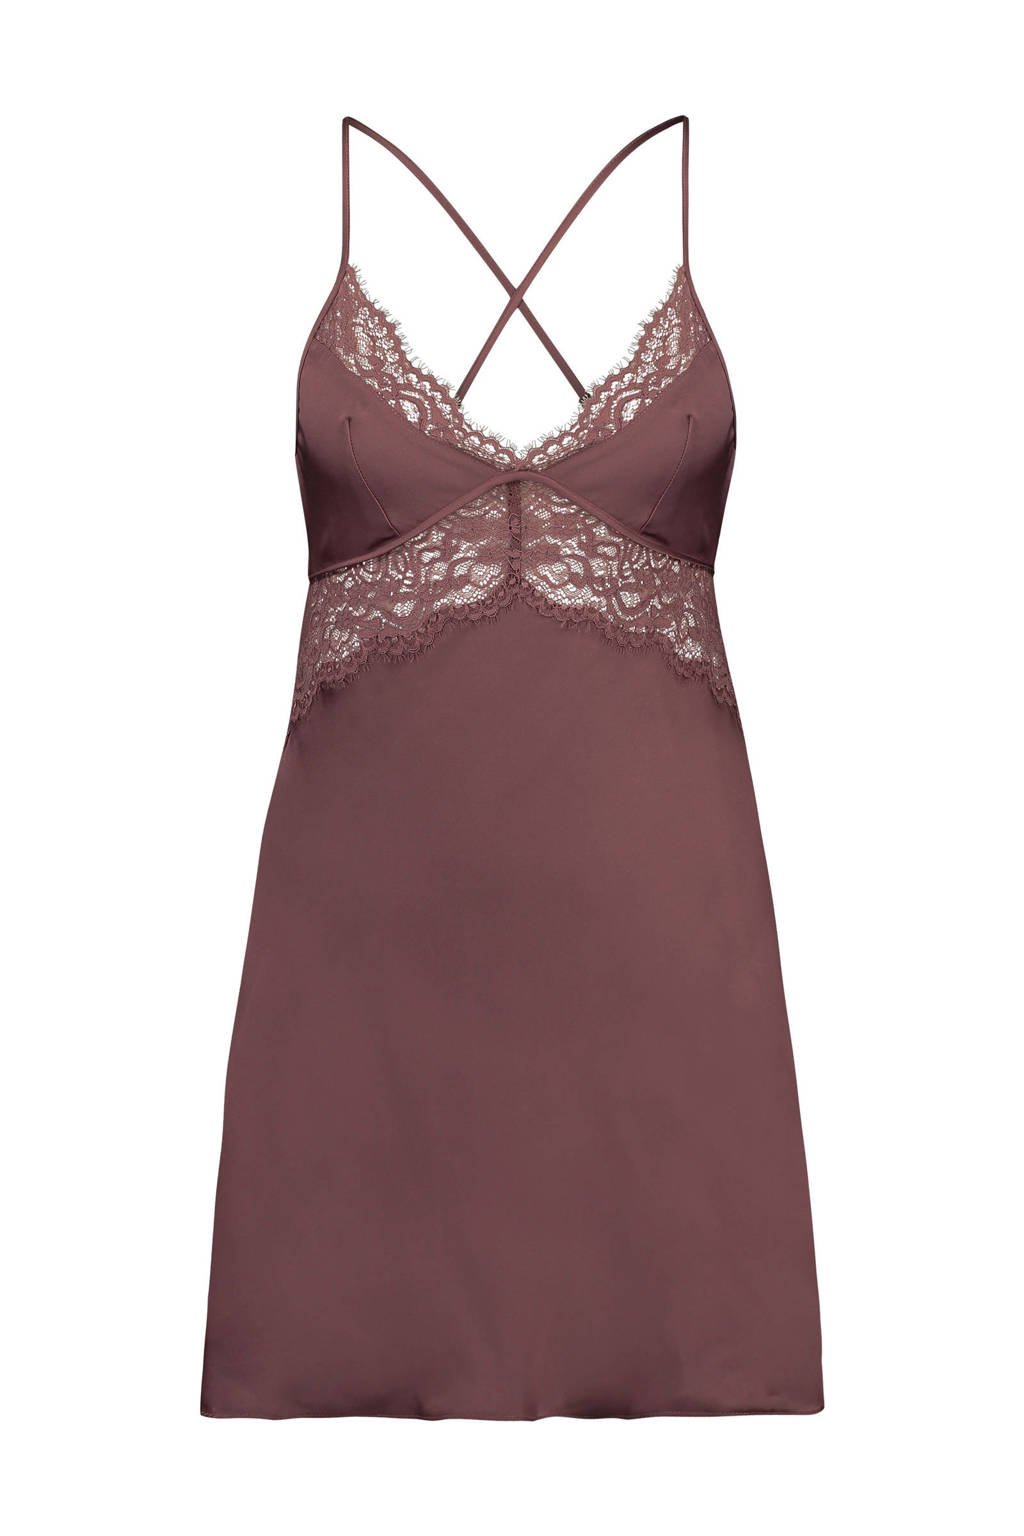 Hunkemöller Private slipdress Satin Honey met kant donkerroze, Donkerroze